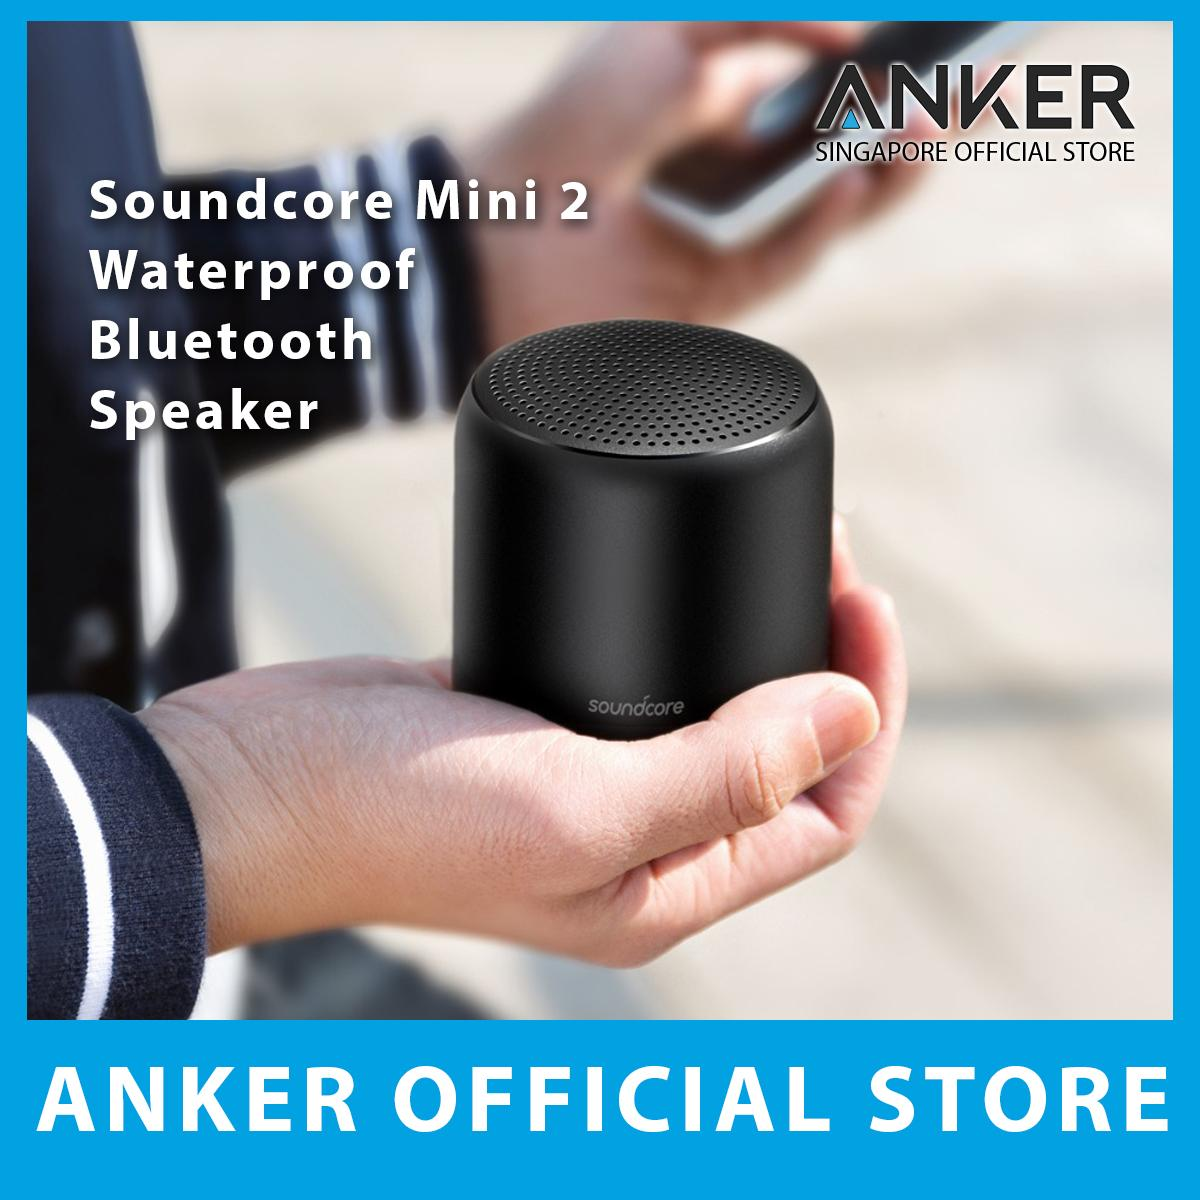 Anker Soundcore Mini 2 Waterproof Bluetooth Speaker, IPX7 Waterproof Outdoor Speaker, Powerful Sound with